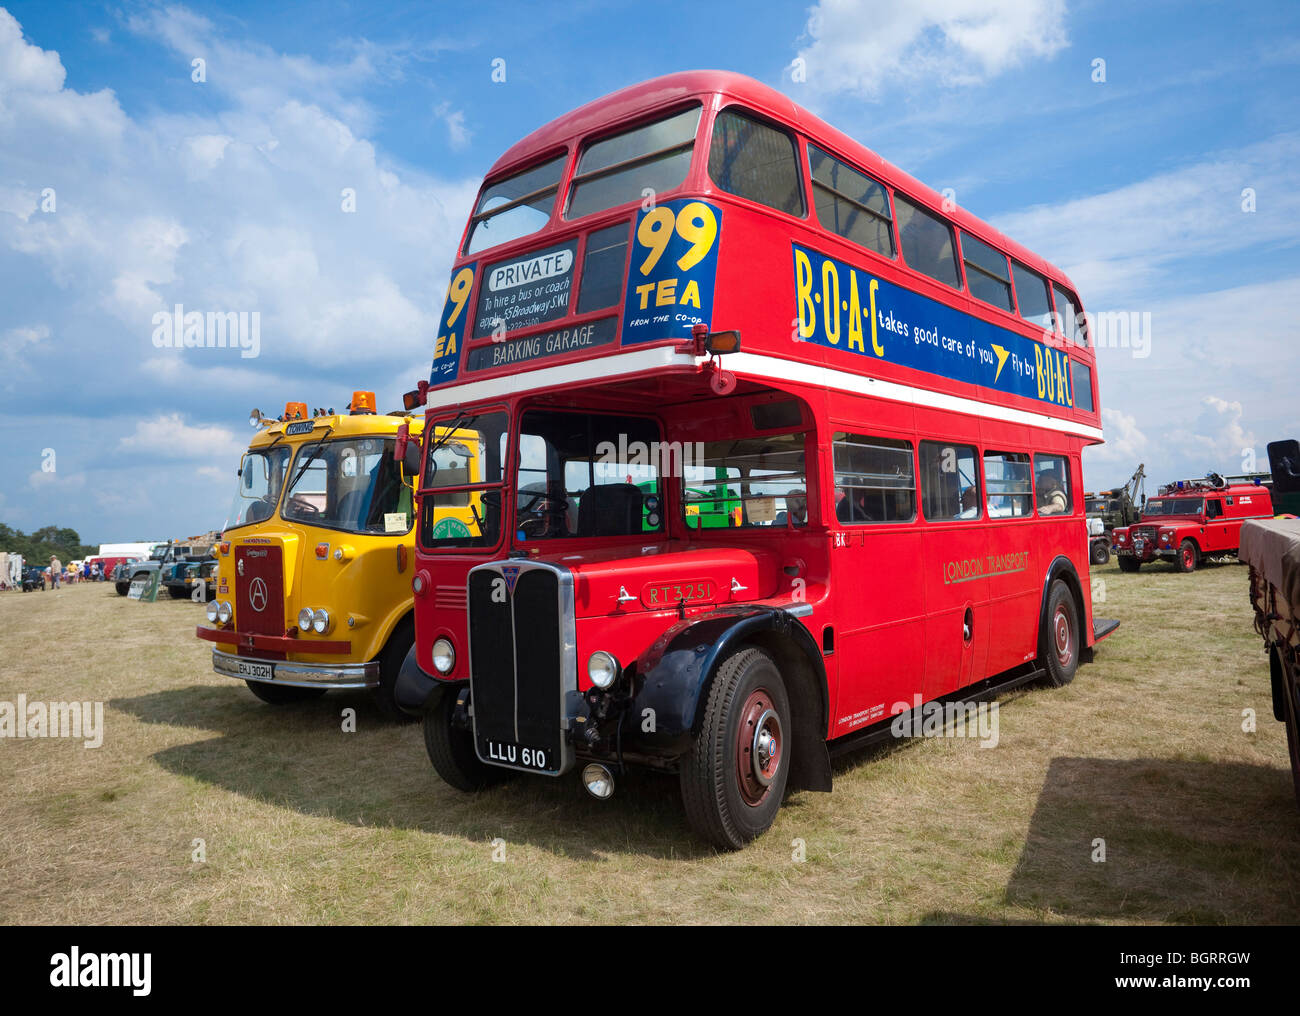 classic red Routemaster bus at a show - Stock Image